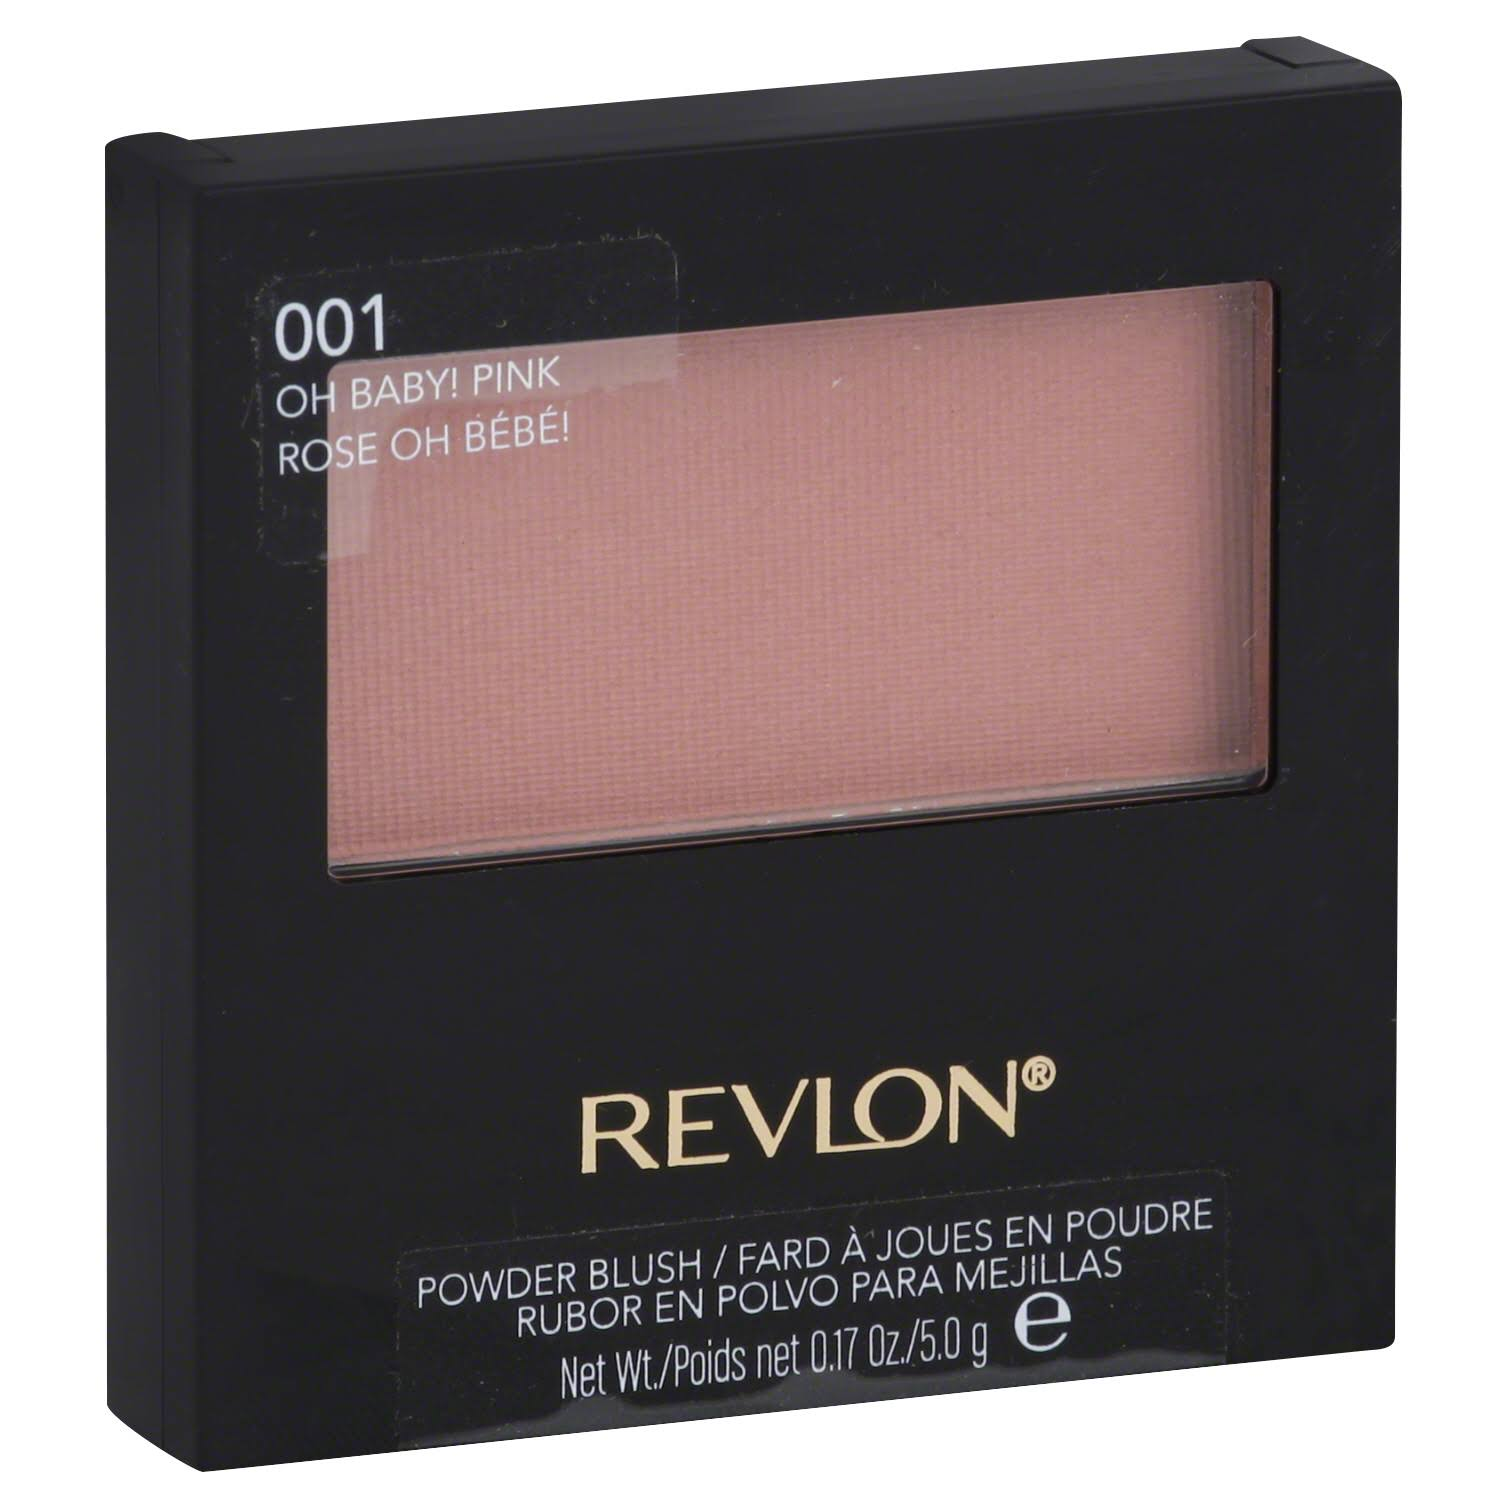 Revlon 001 Oh Baby! Pink Powder Blush - 0.17 oz